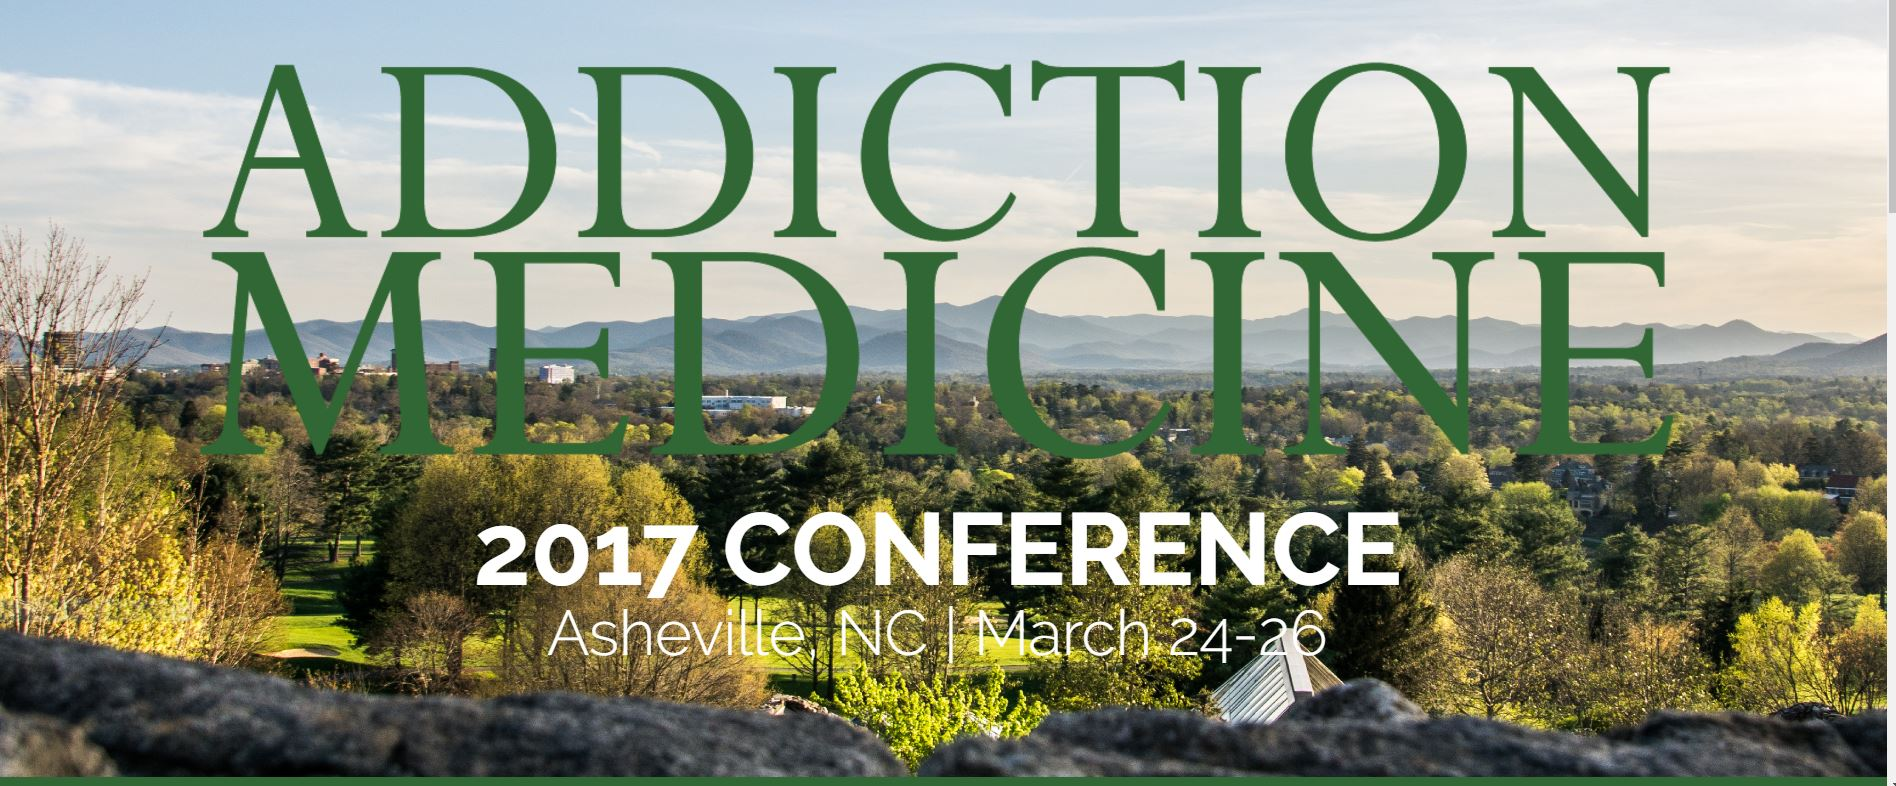 Addiction Medicine Conference 2017